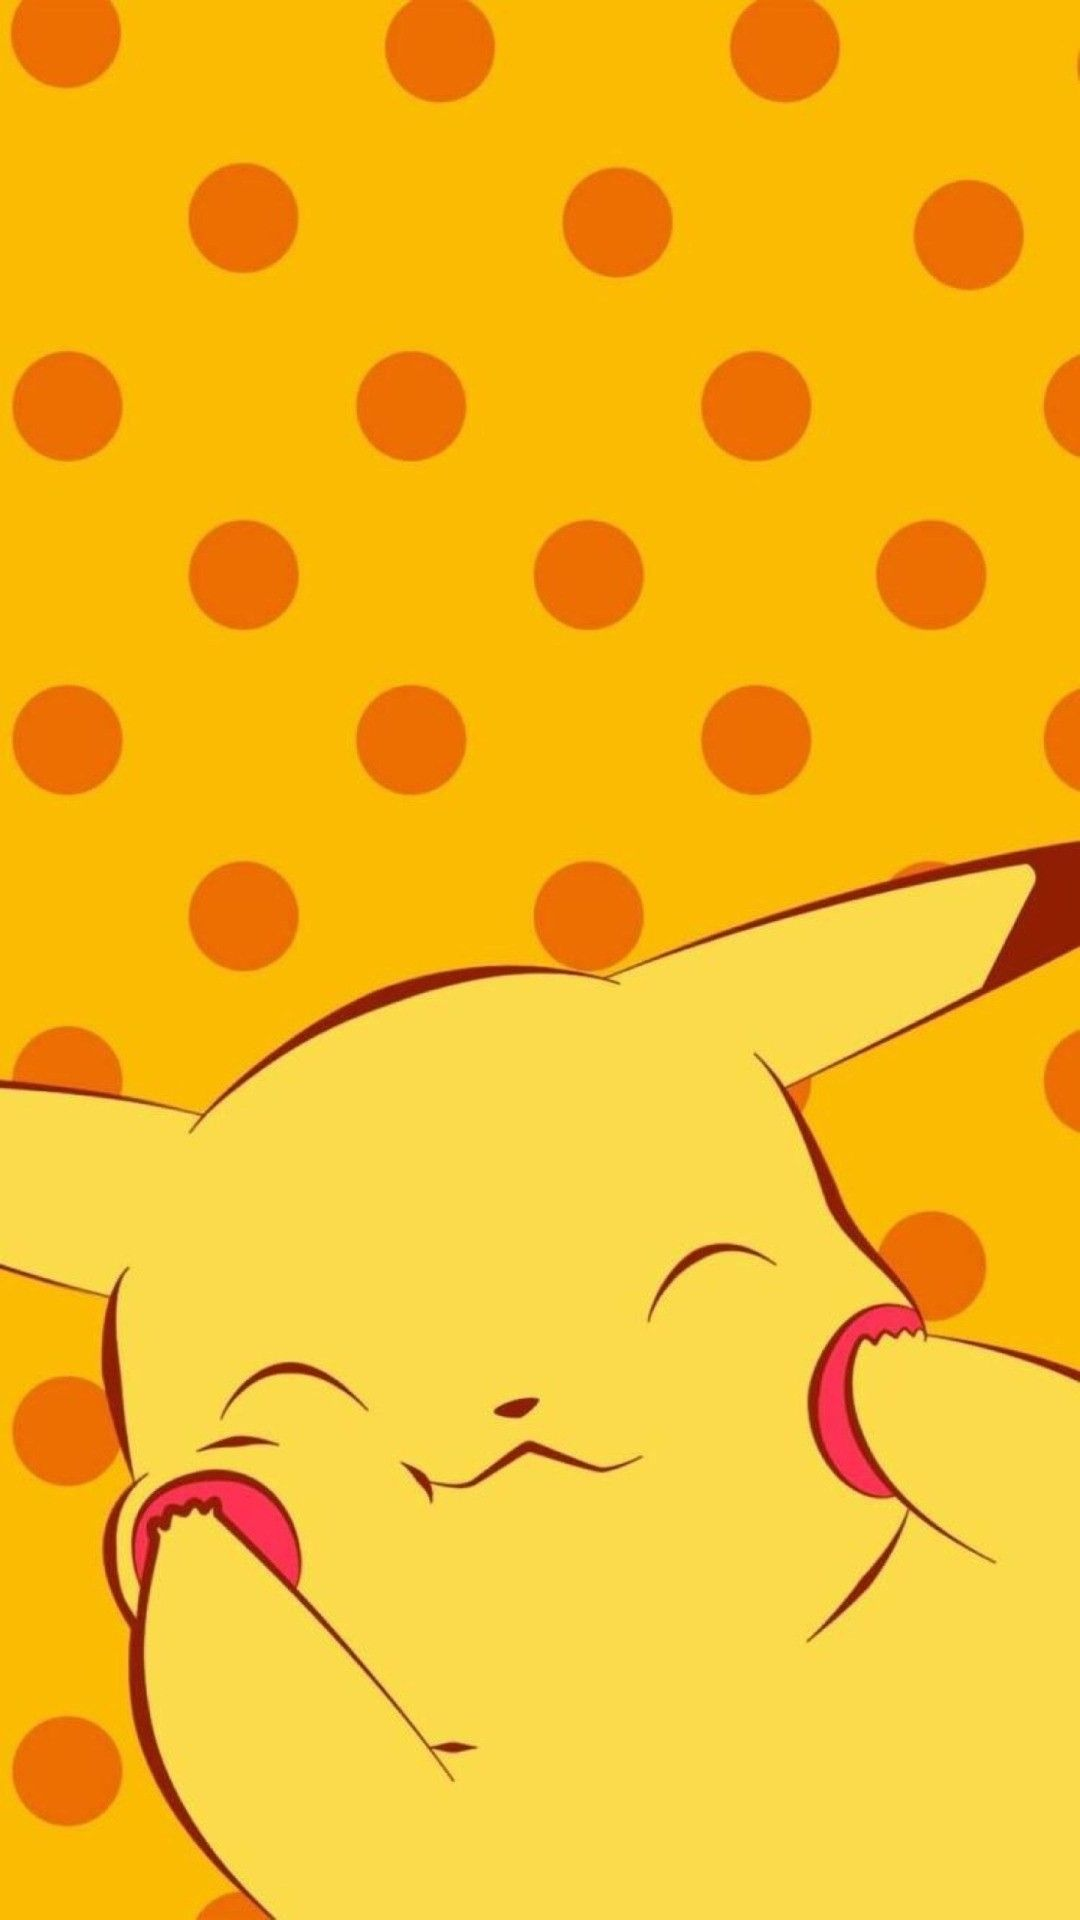 Yellow Pokemon Iphone Wallpapers Top Free Yellow Pokemon Iphone Backgrounds Wallpaperaccess